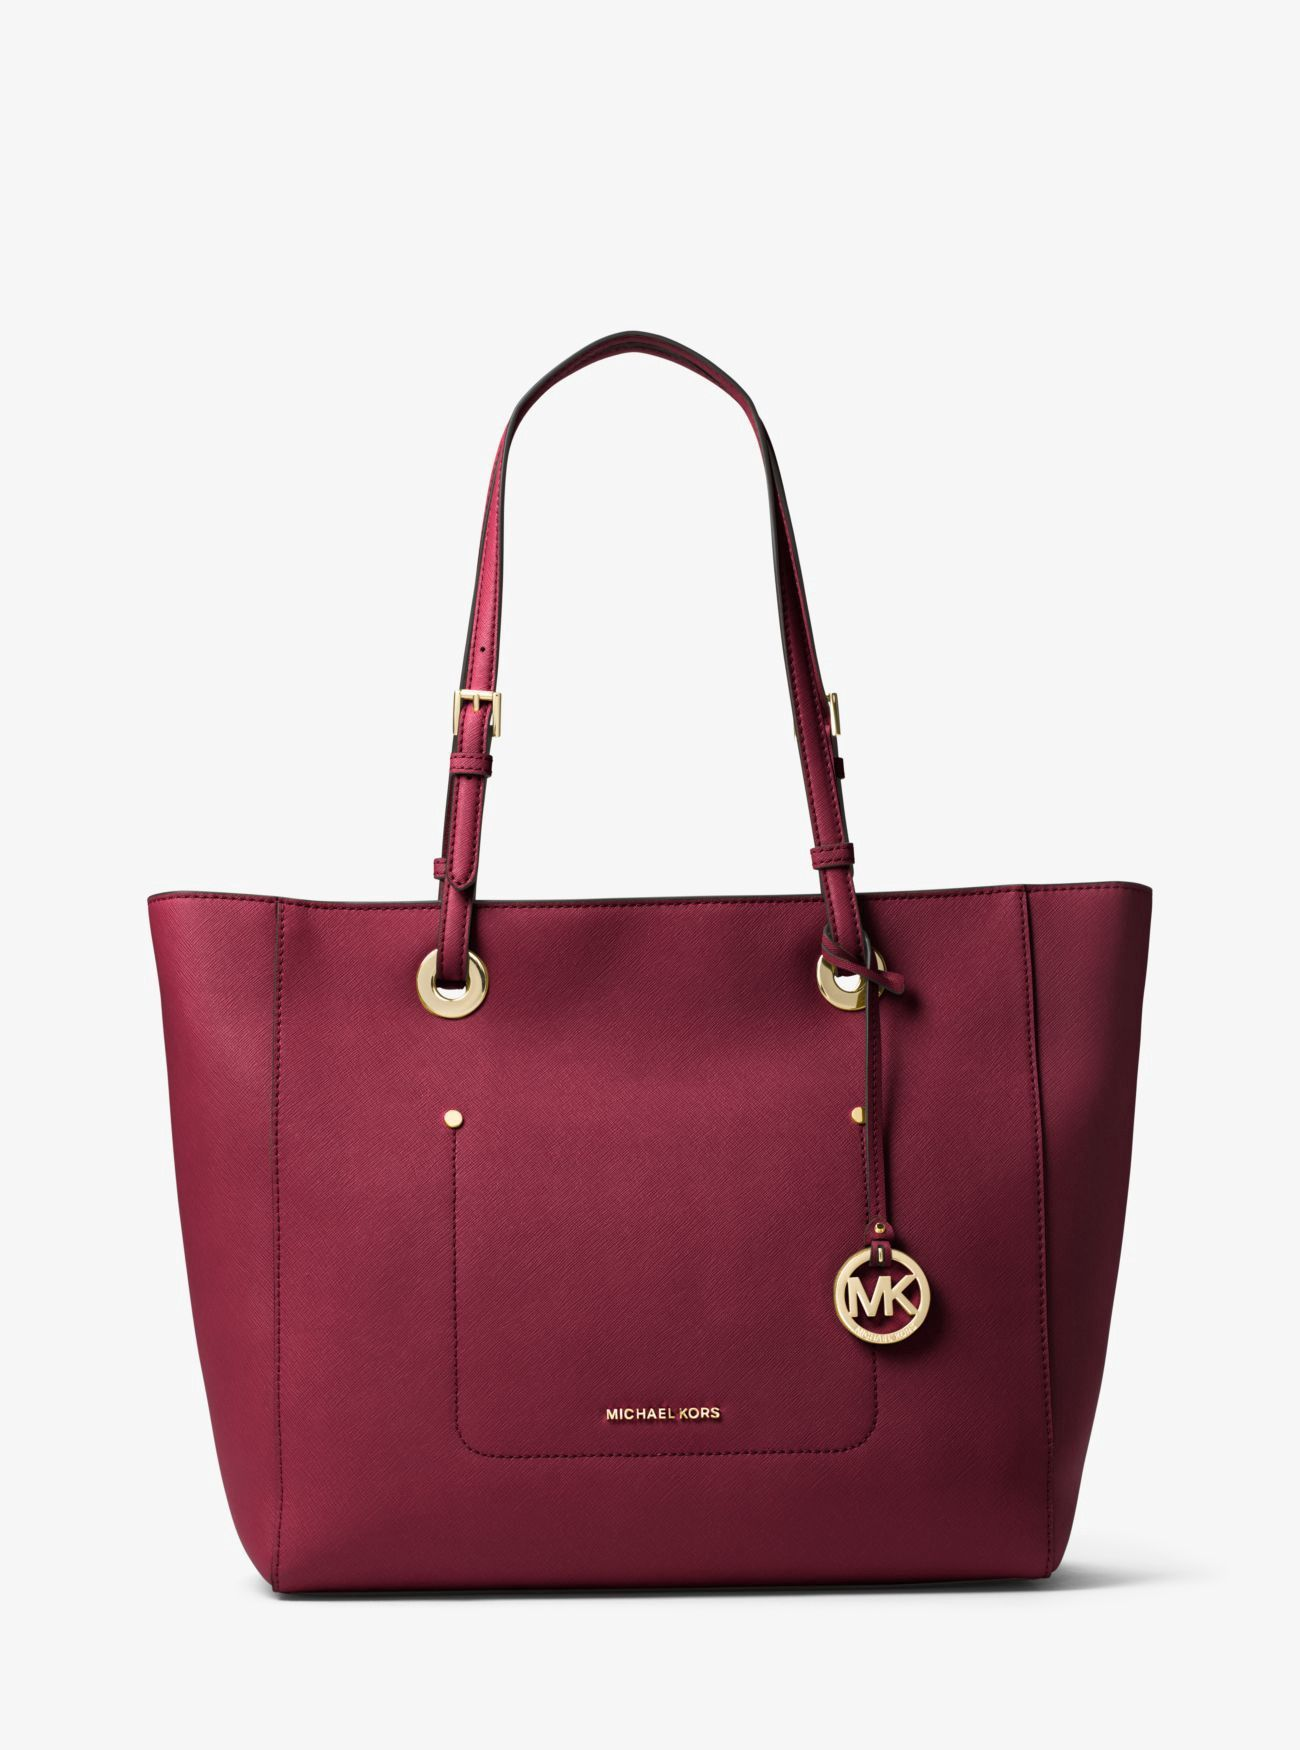 6e6ecbd783ad63 MICHAEL KORS Walsh Large Saffiano Leather Tote. #michaelkors #bags #leather  #hand bags #nylon #tote #lining #